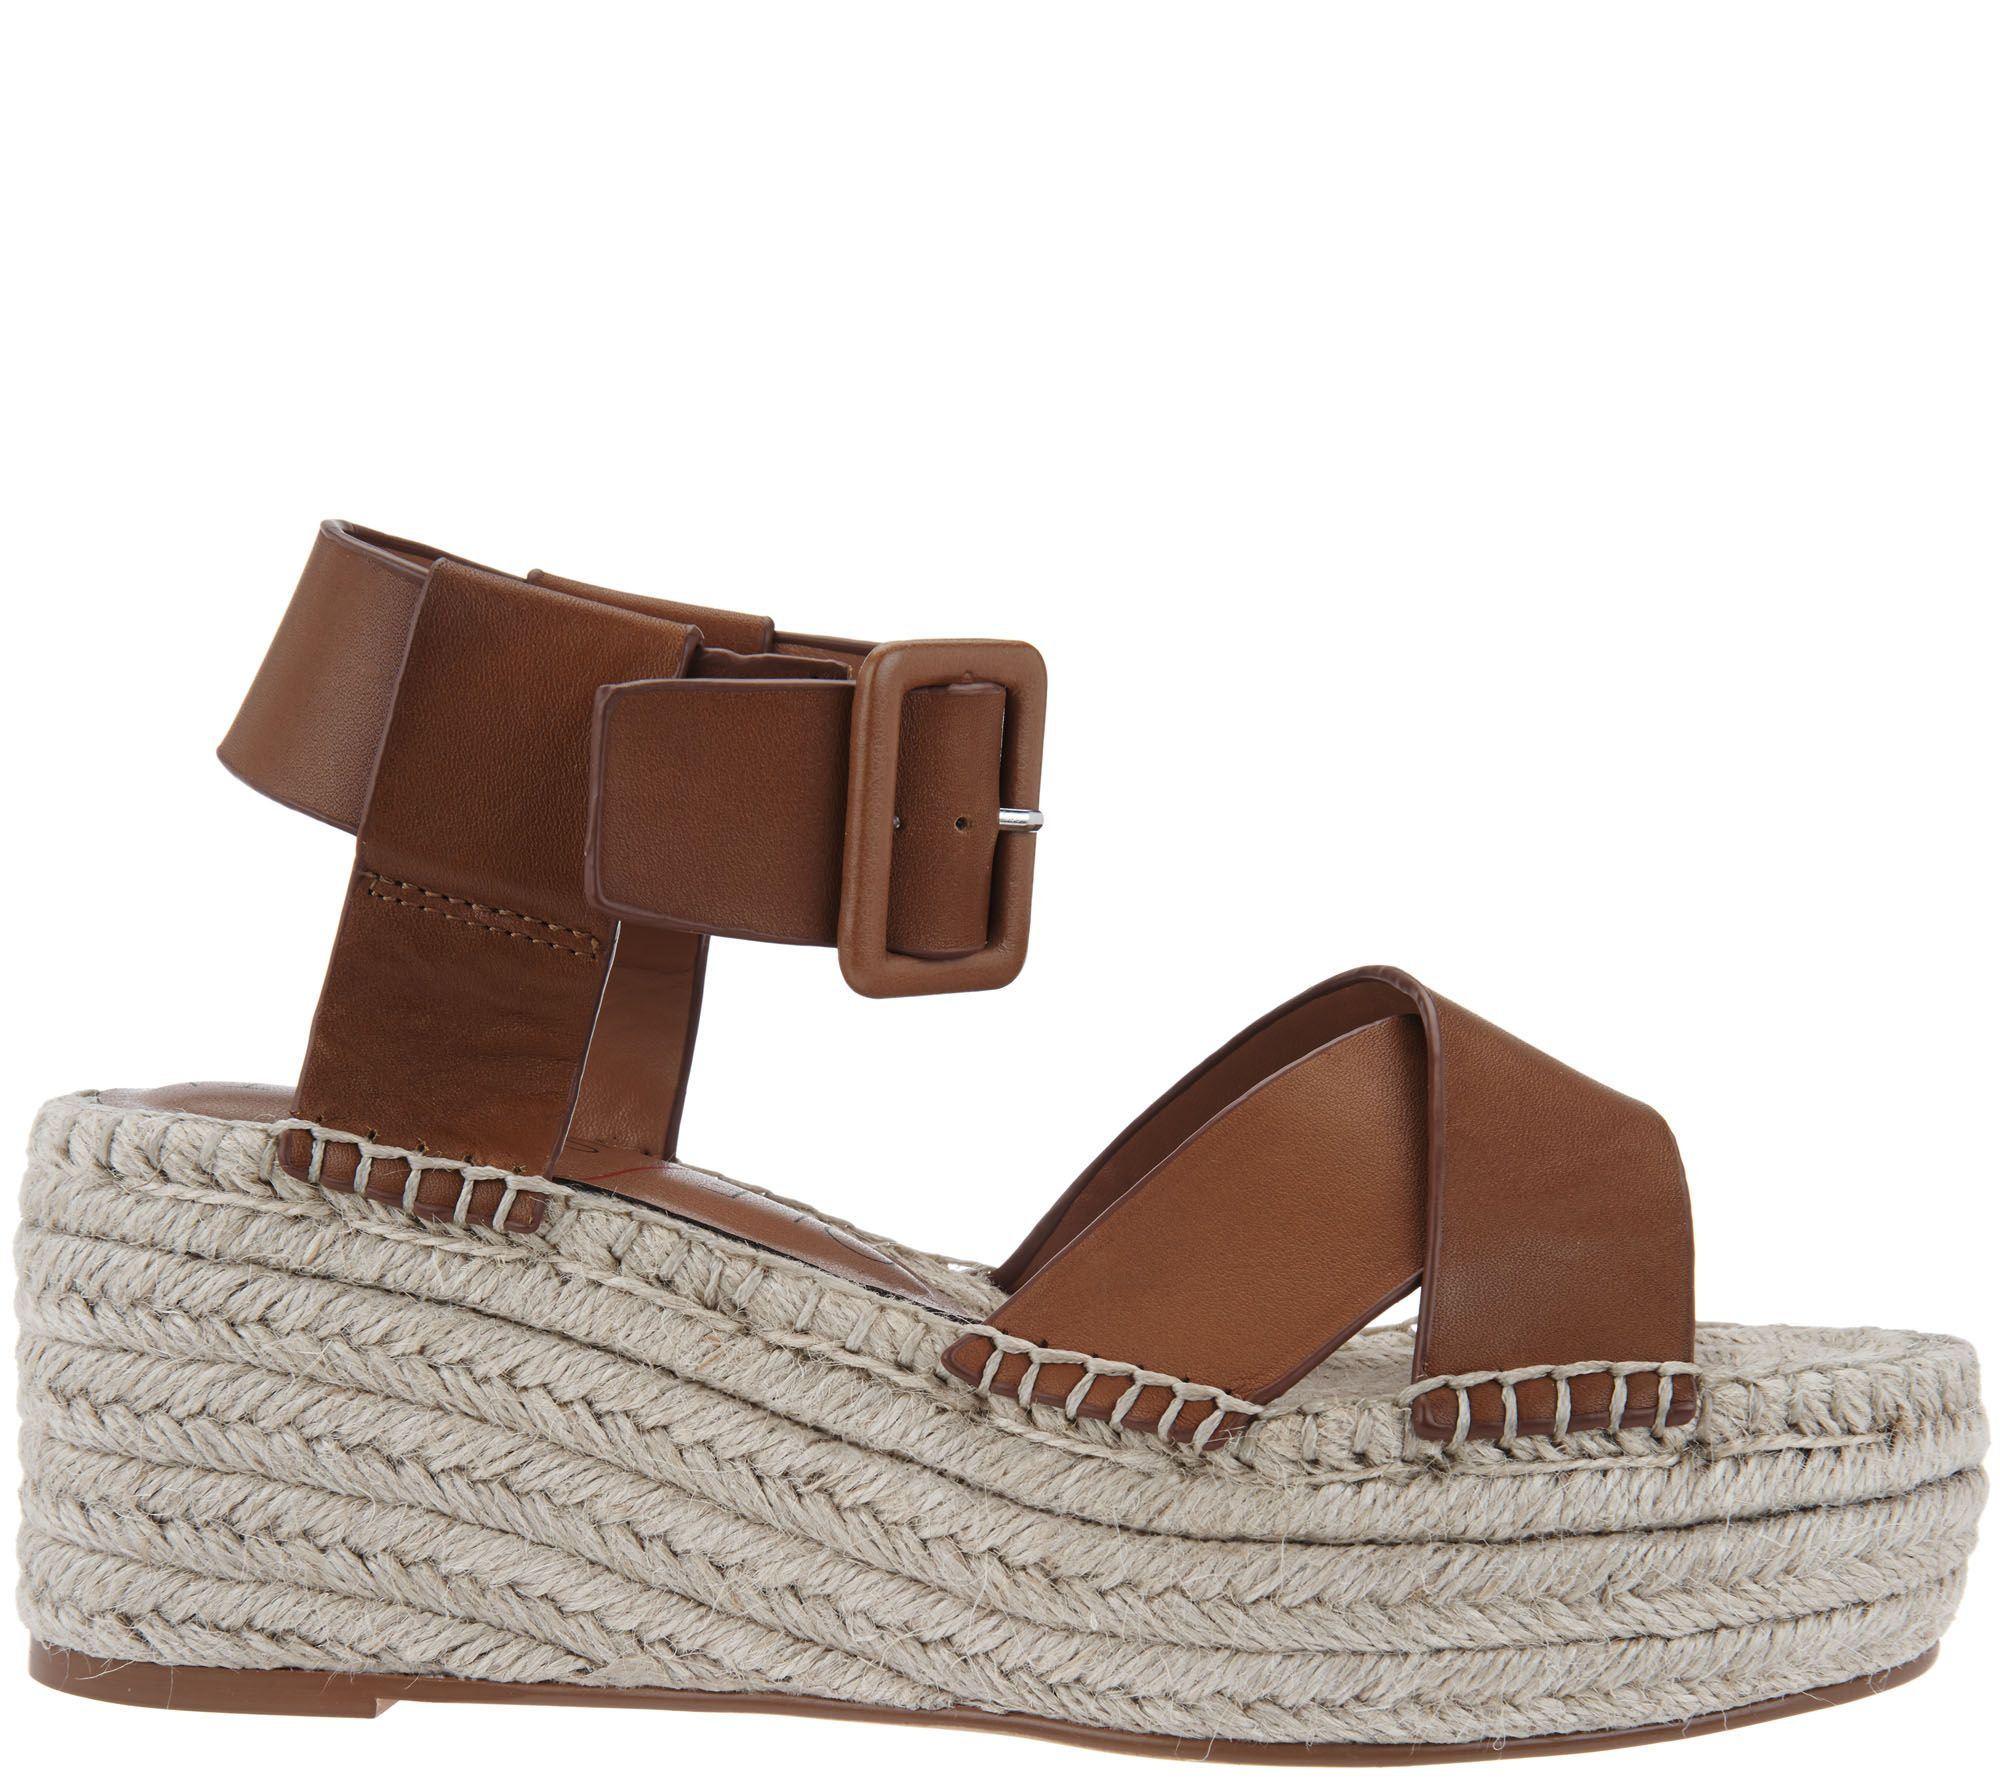 d9286a8f205 Sole Society Leather Espadrille Platform Wedges - Audrina - Page 1 — QVC.com